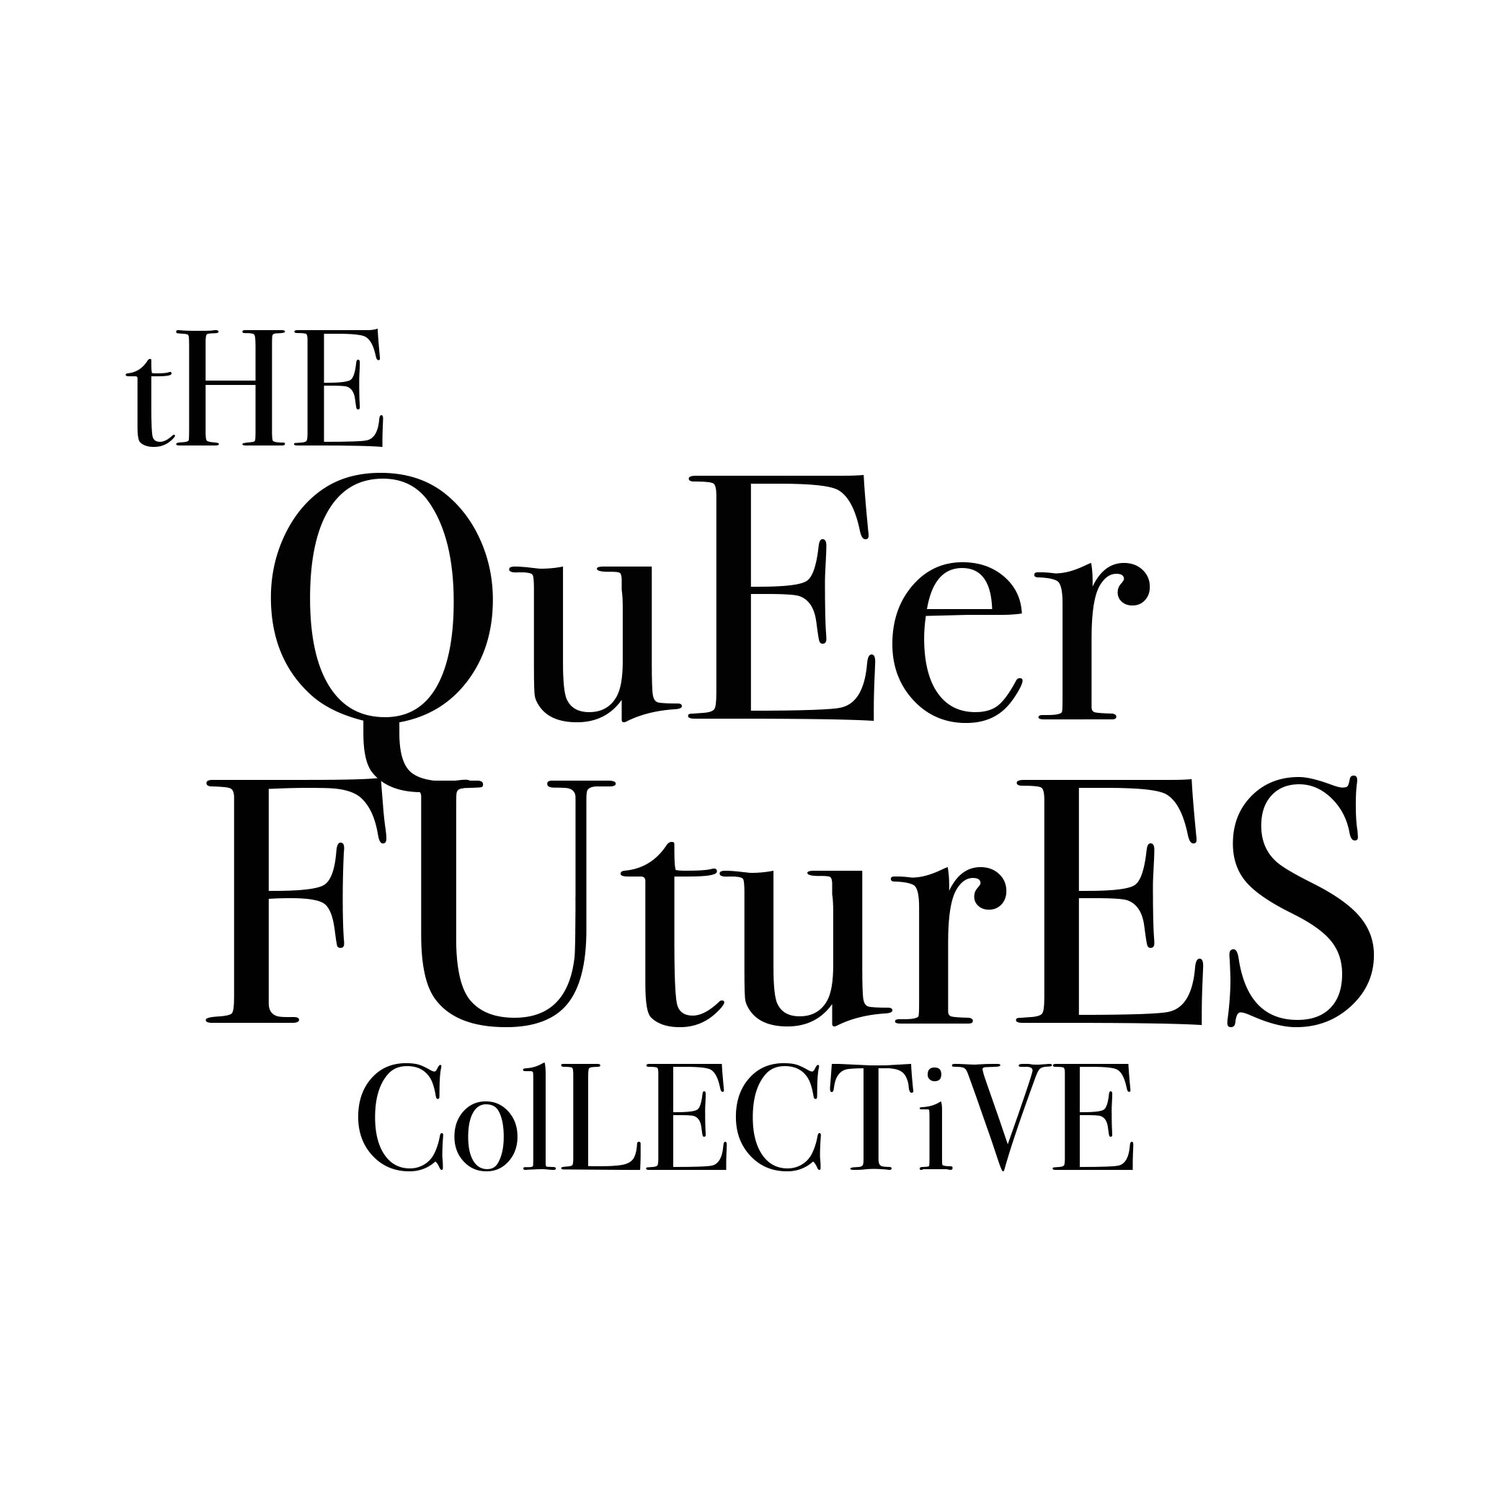 The Queer Futures Collective